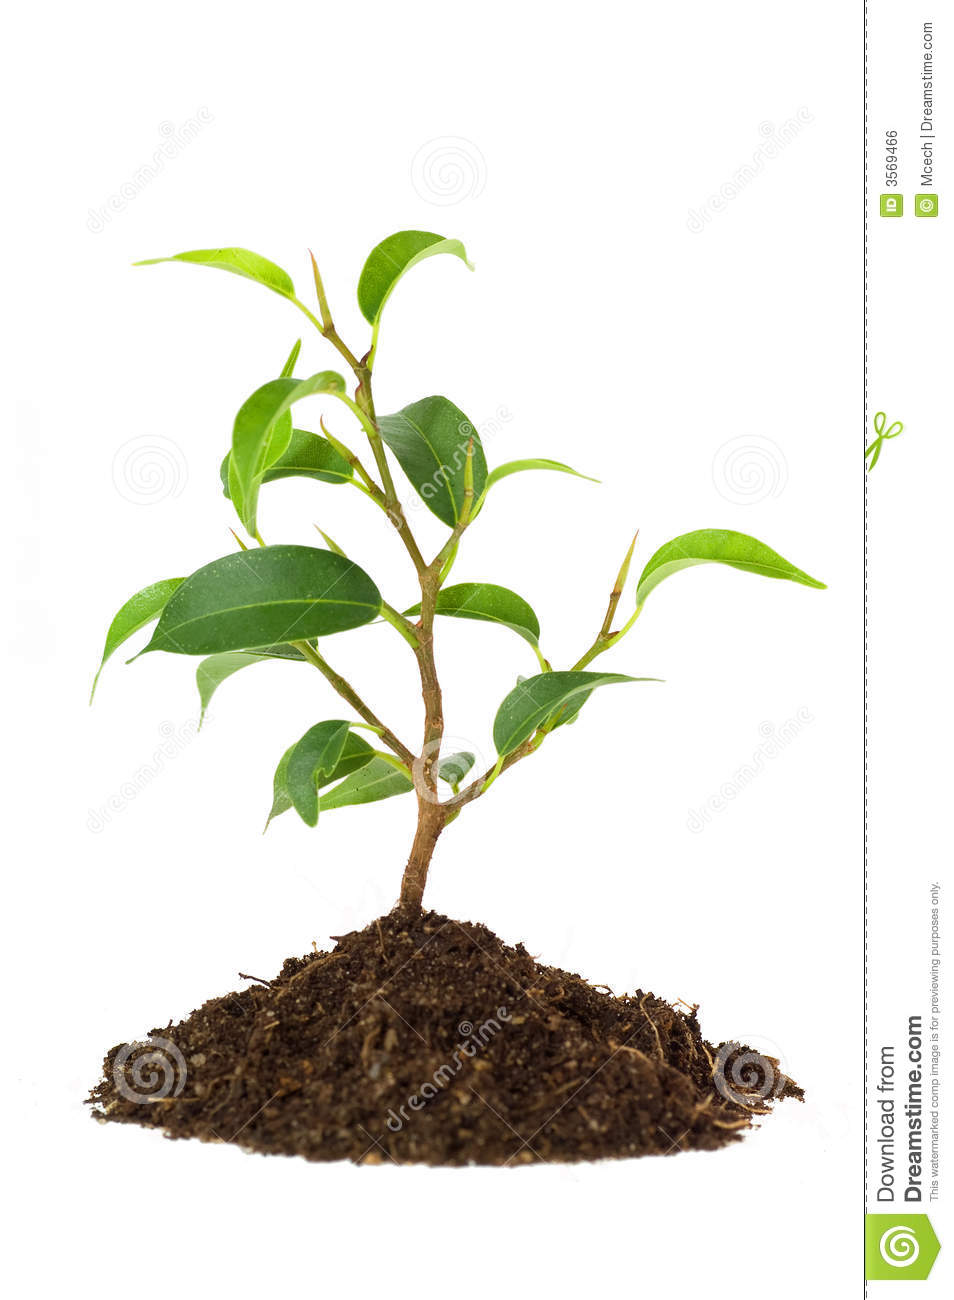 New Plant Life Royalty Free Stock Image - Image: 3569466